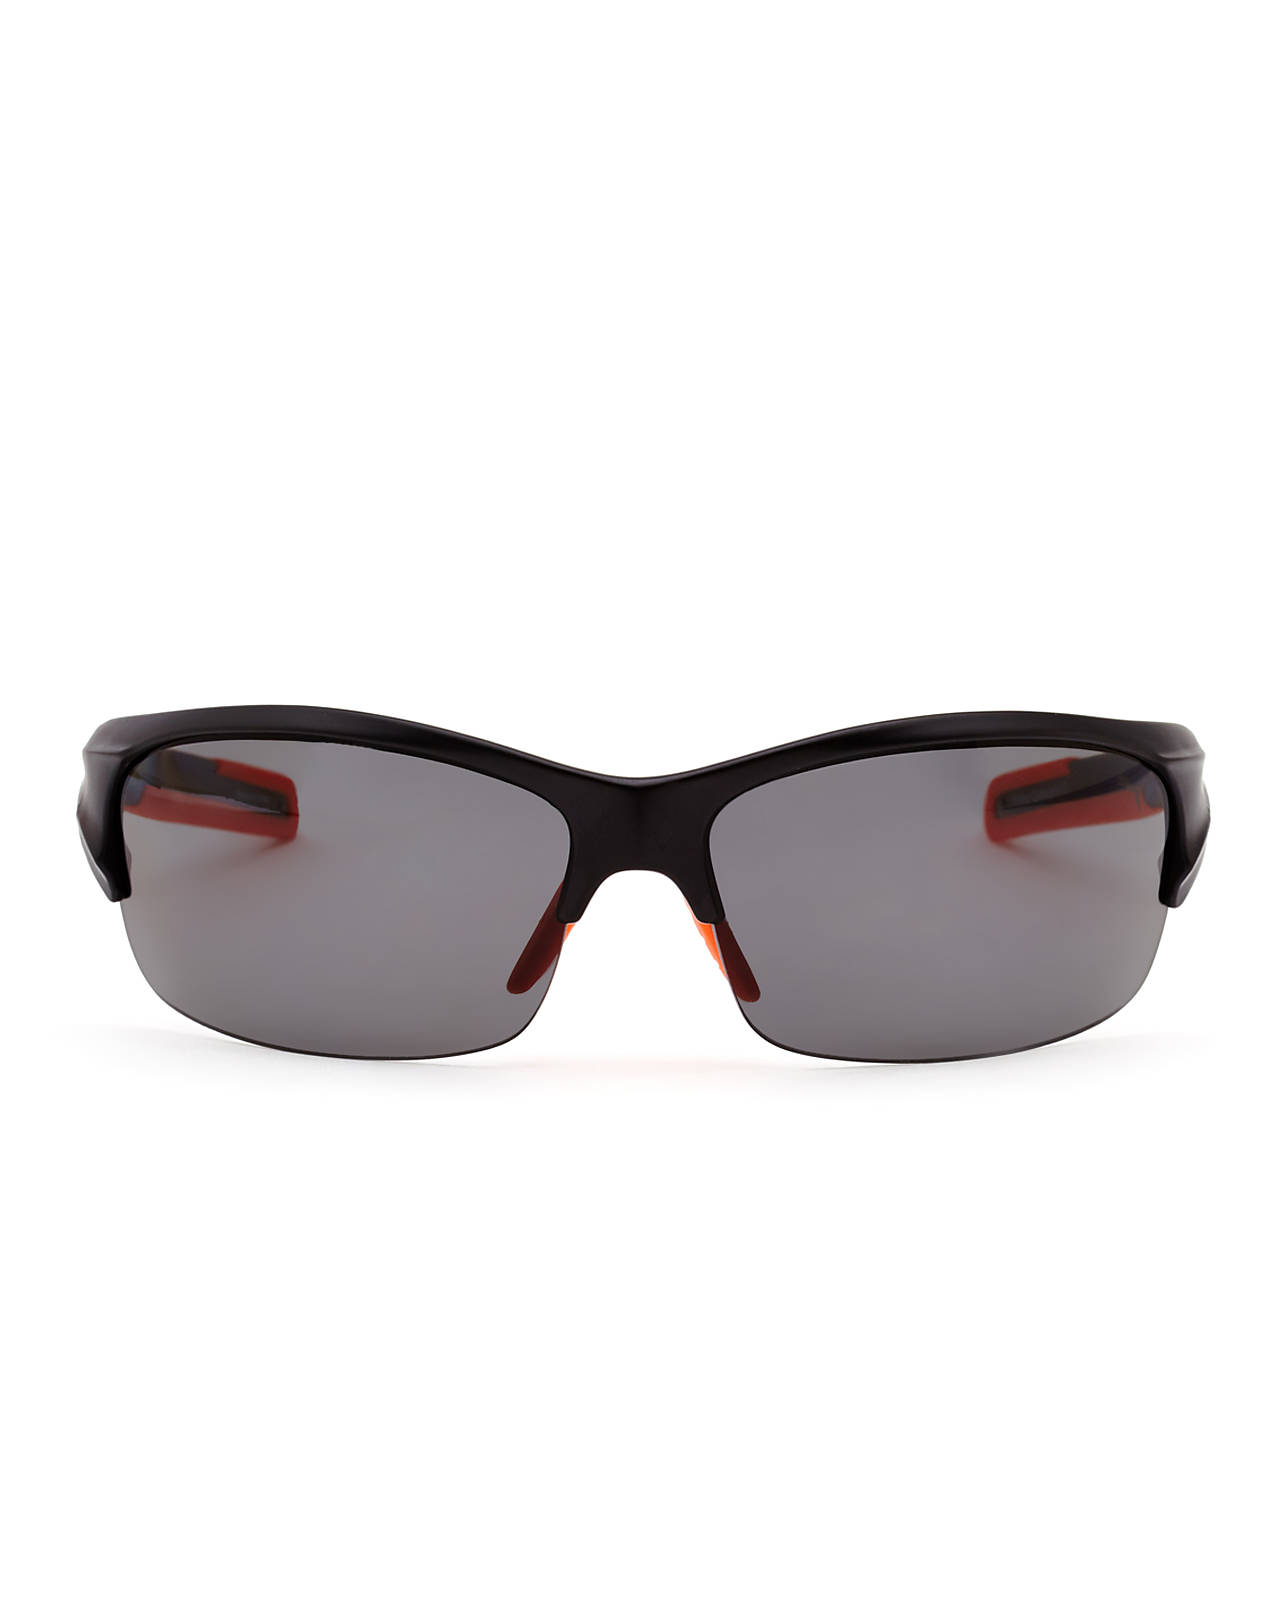 456640bcc1d Lyst - Puma Pu14704P Black Half-Rim Wrap Polarized Sunglasses in ...